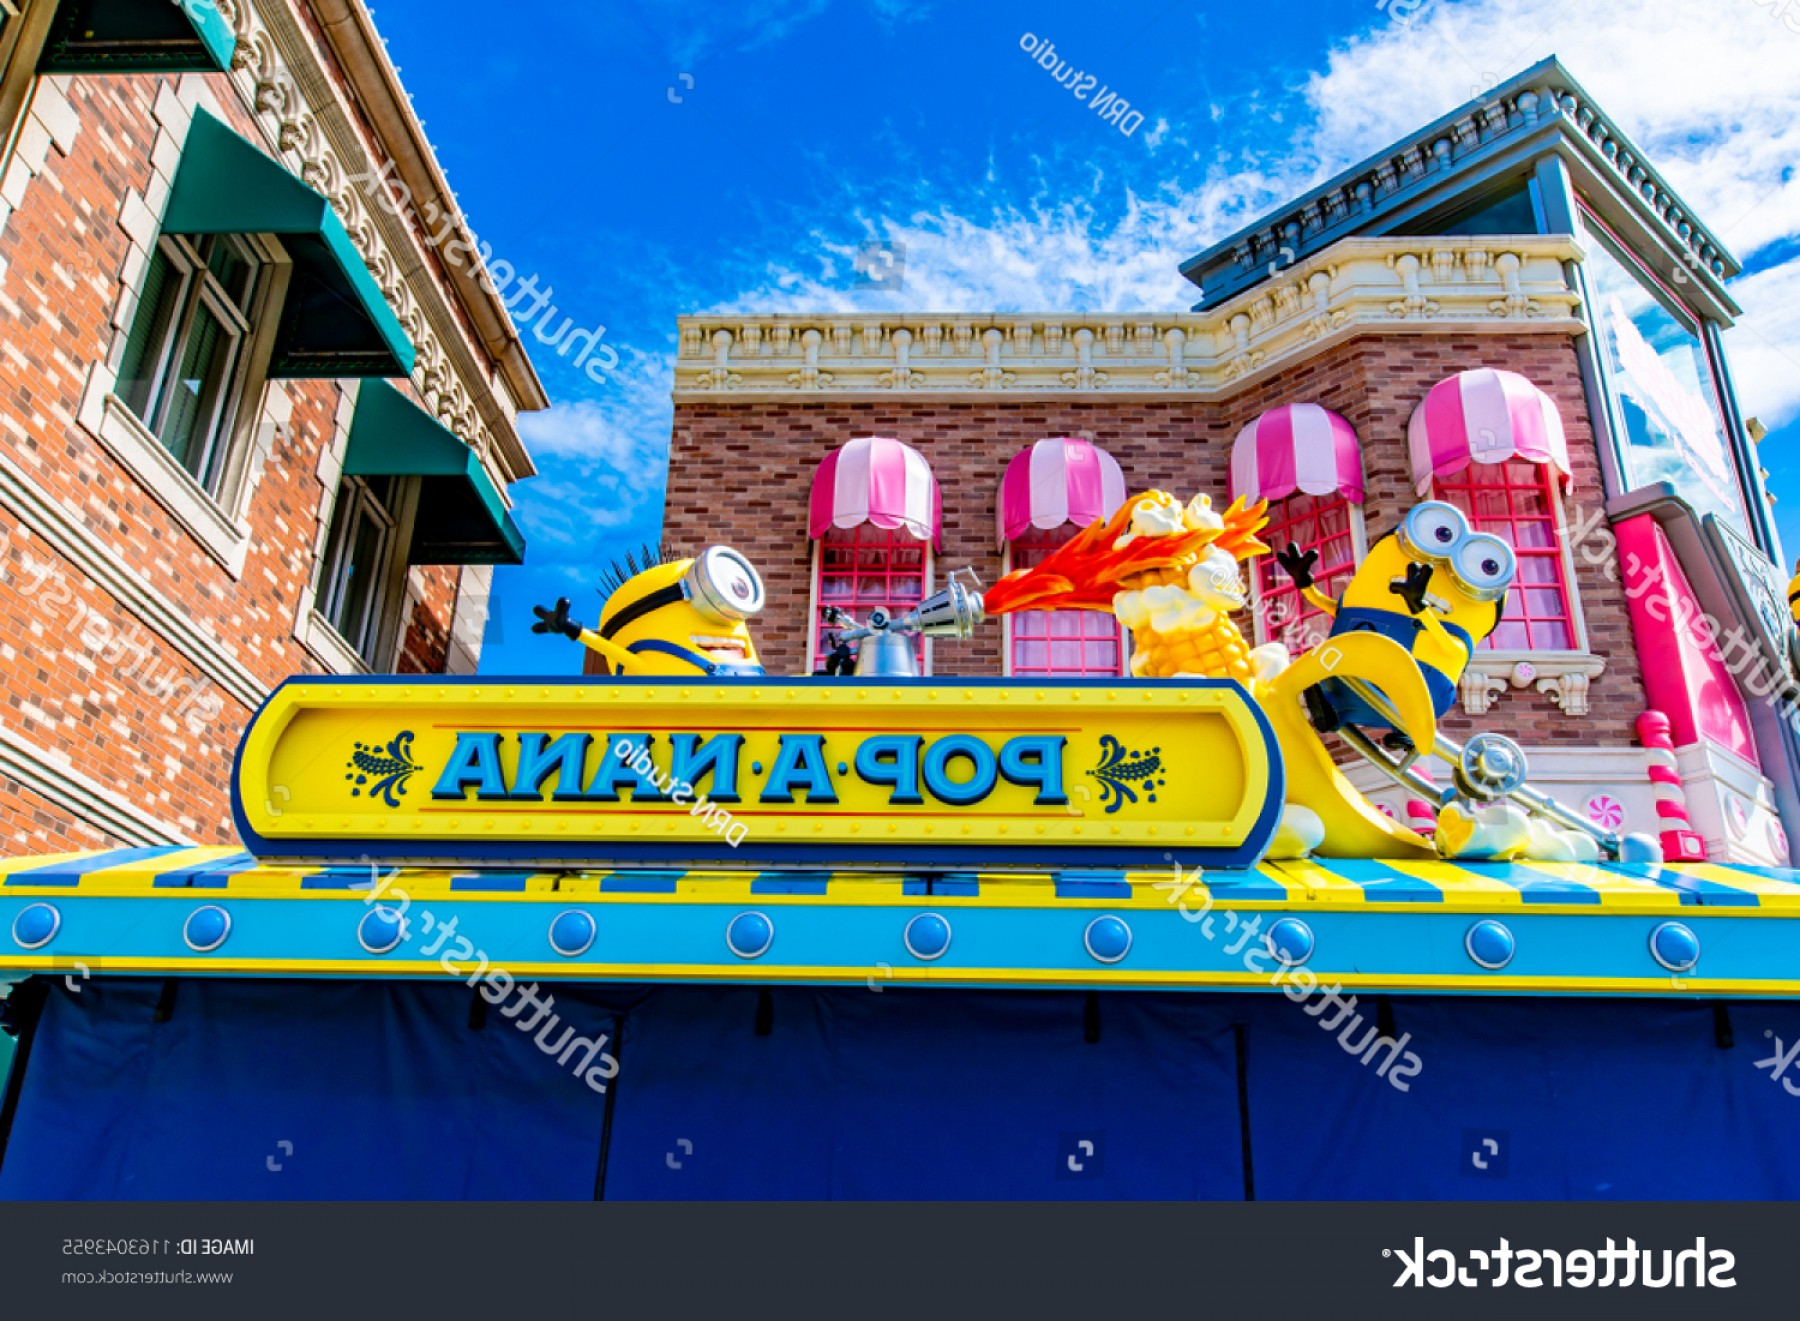 Dispicable Me Vectors House: Osaka Japan August Happy